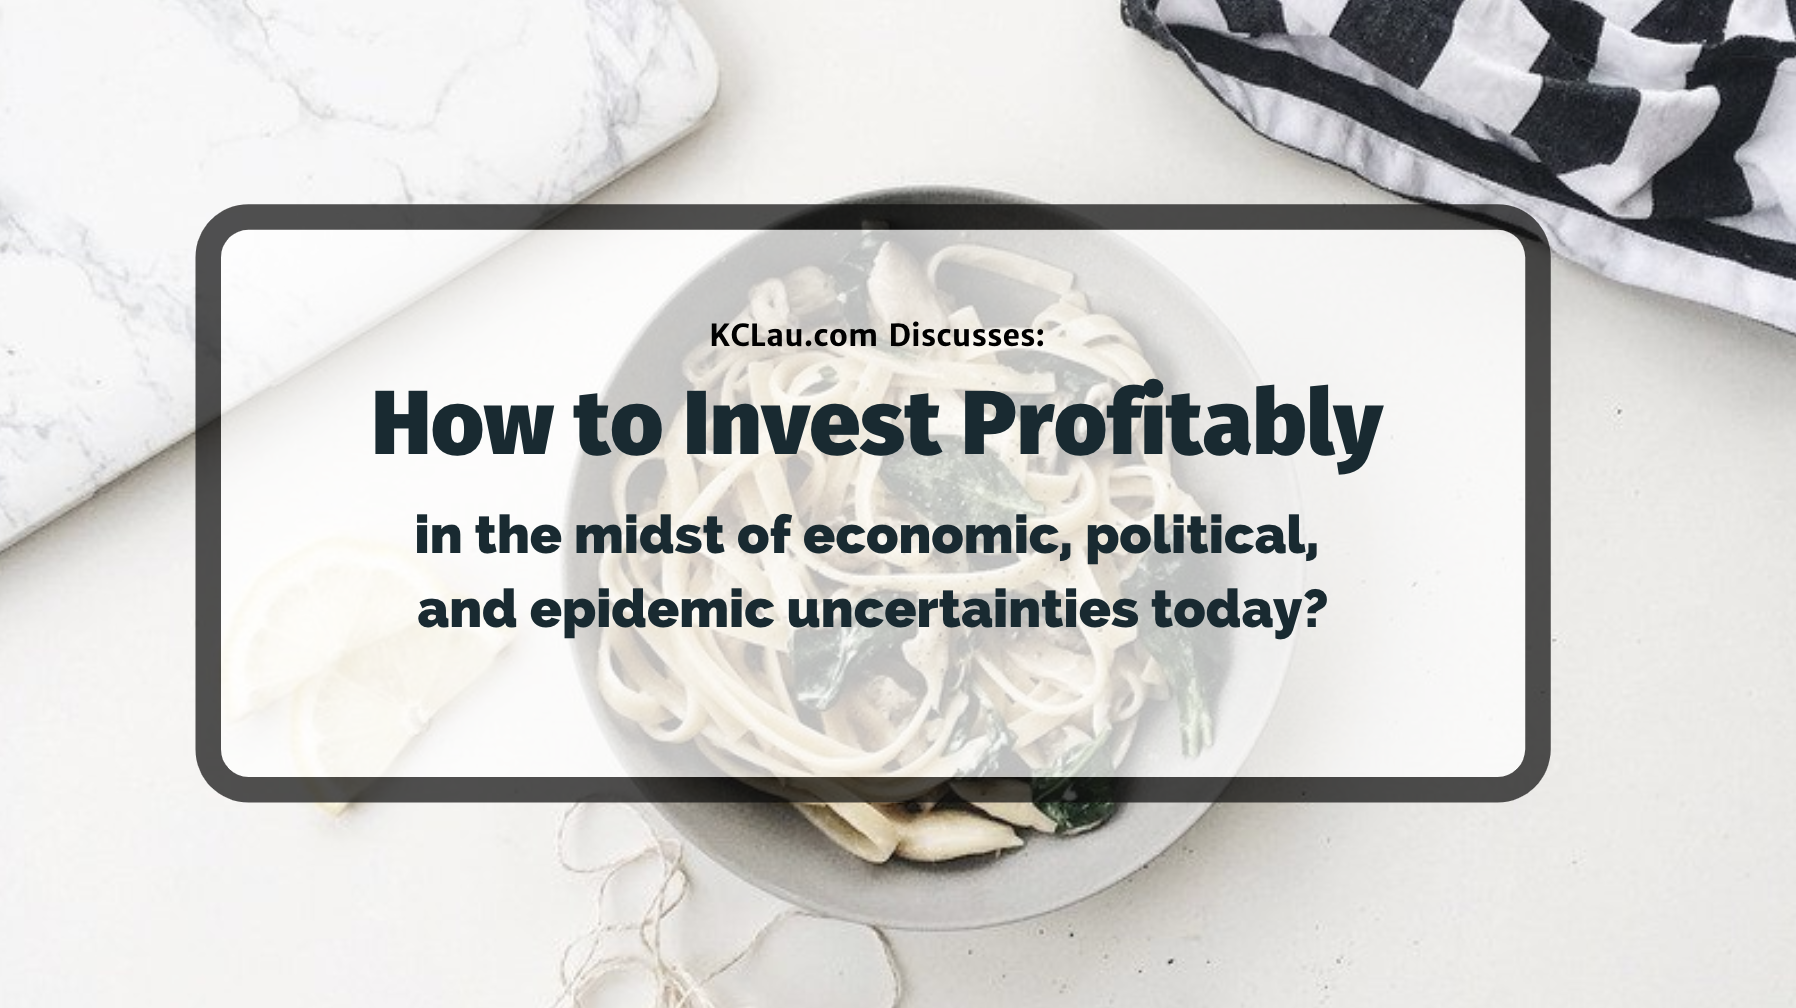 How to Invest Profitably in the Stock Market Today In the Midst of Economic, Political, and Epidemic Uncertainties?